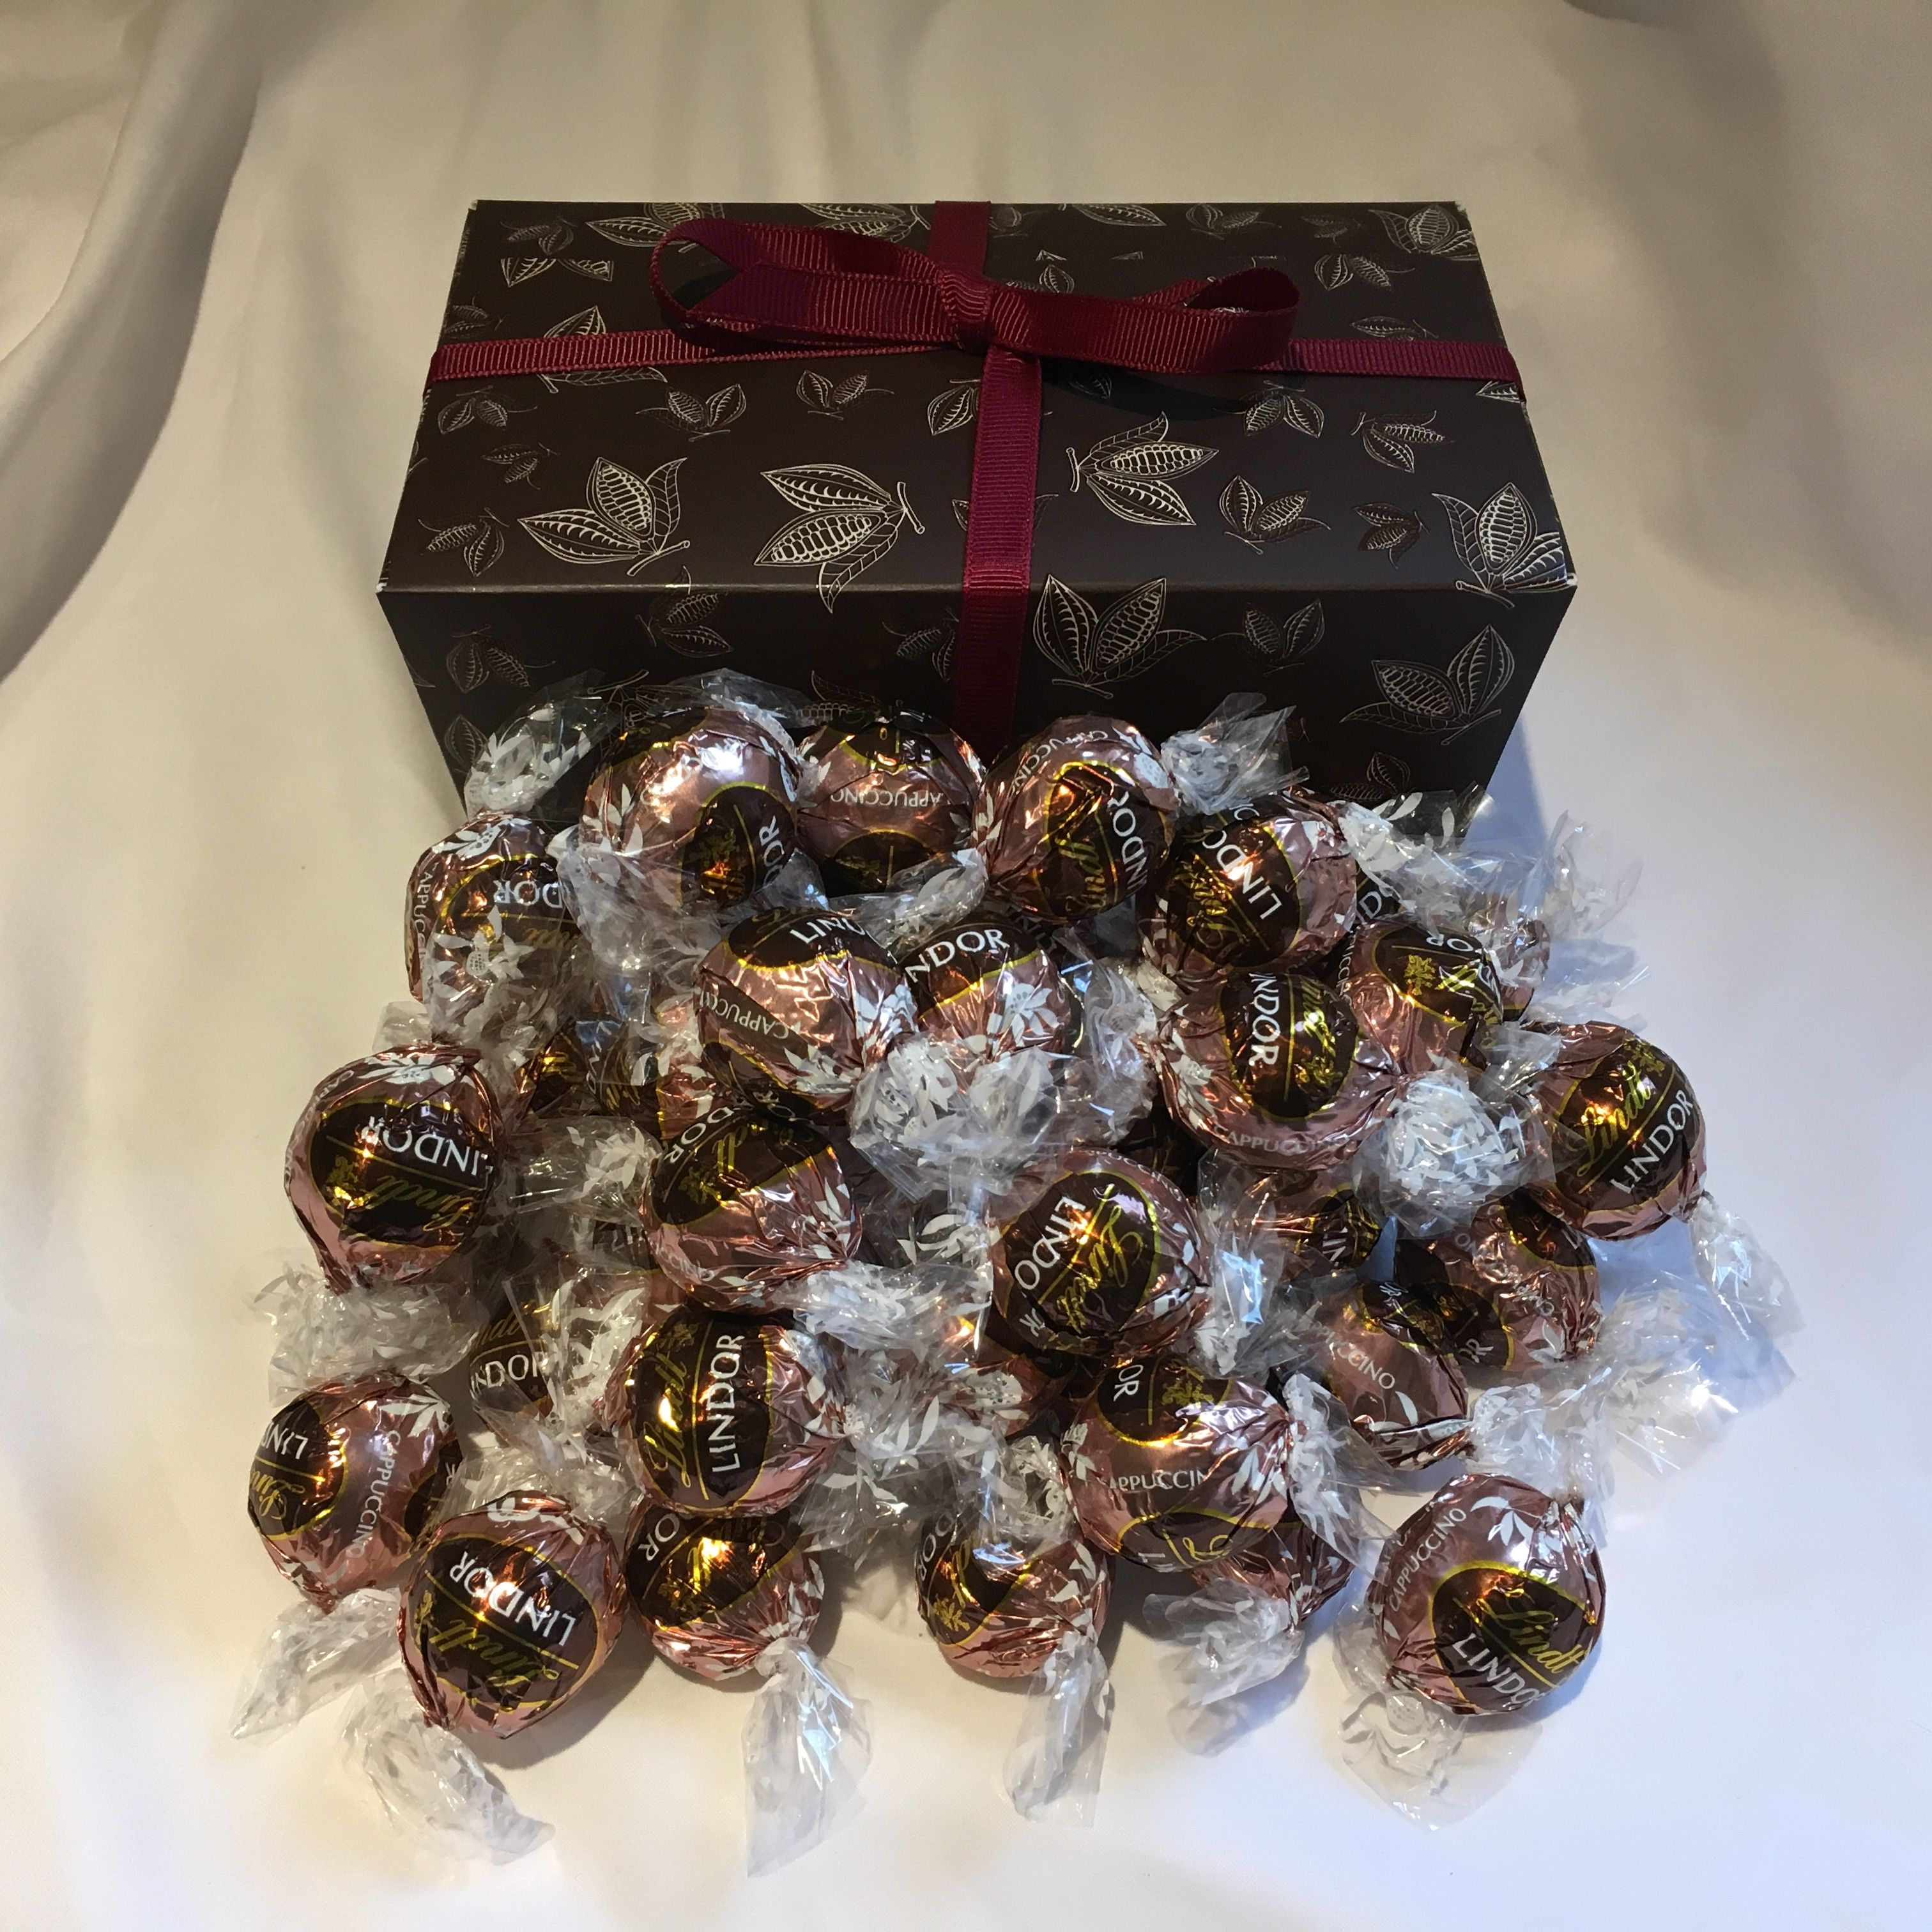 These are the lighter sister of the Lindt Lindor dark chocolate ...